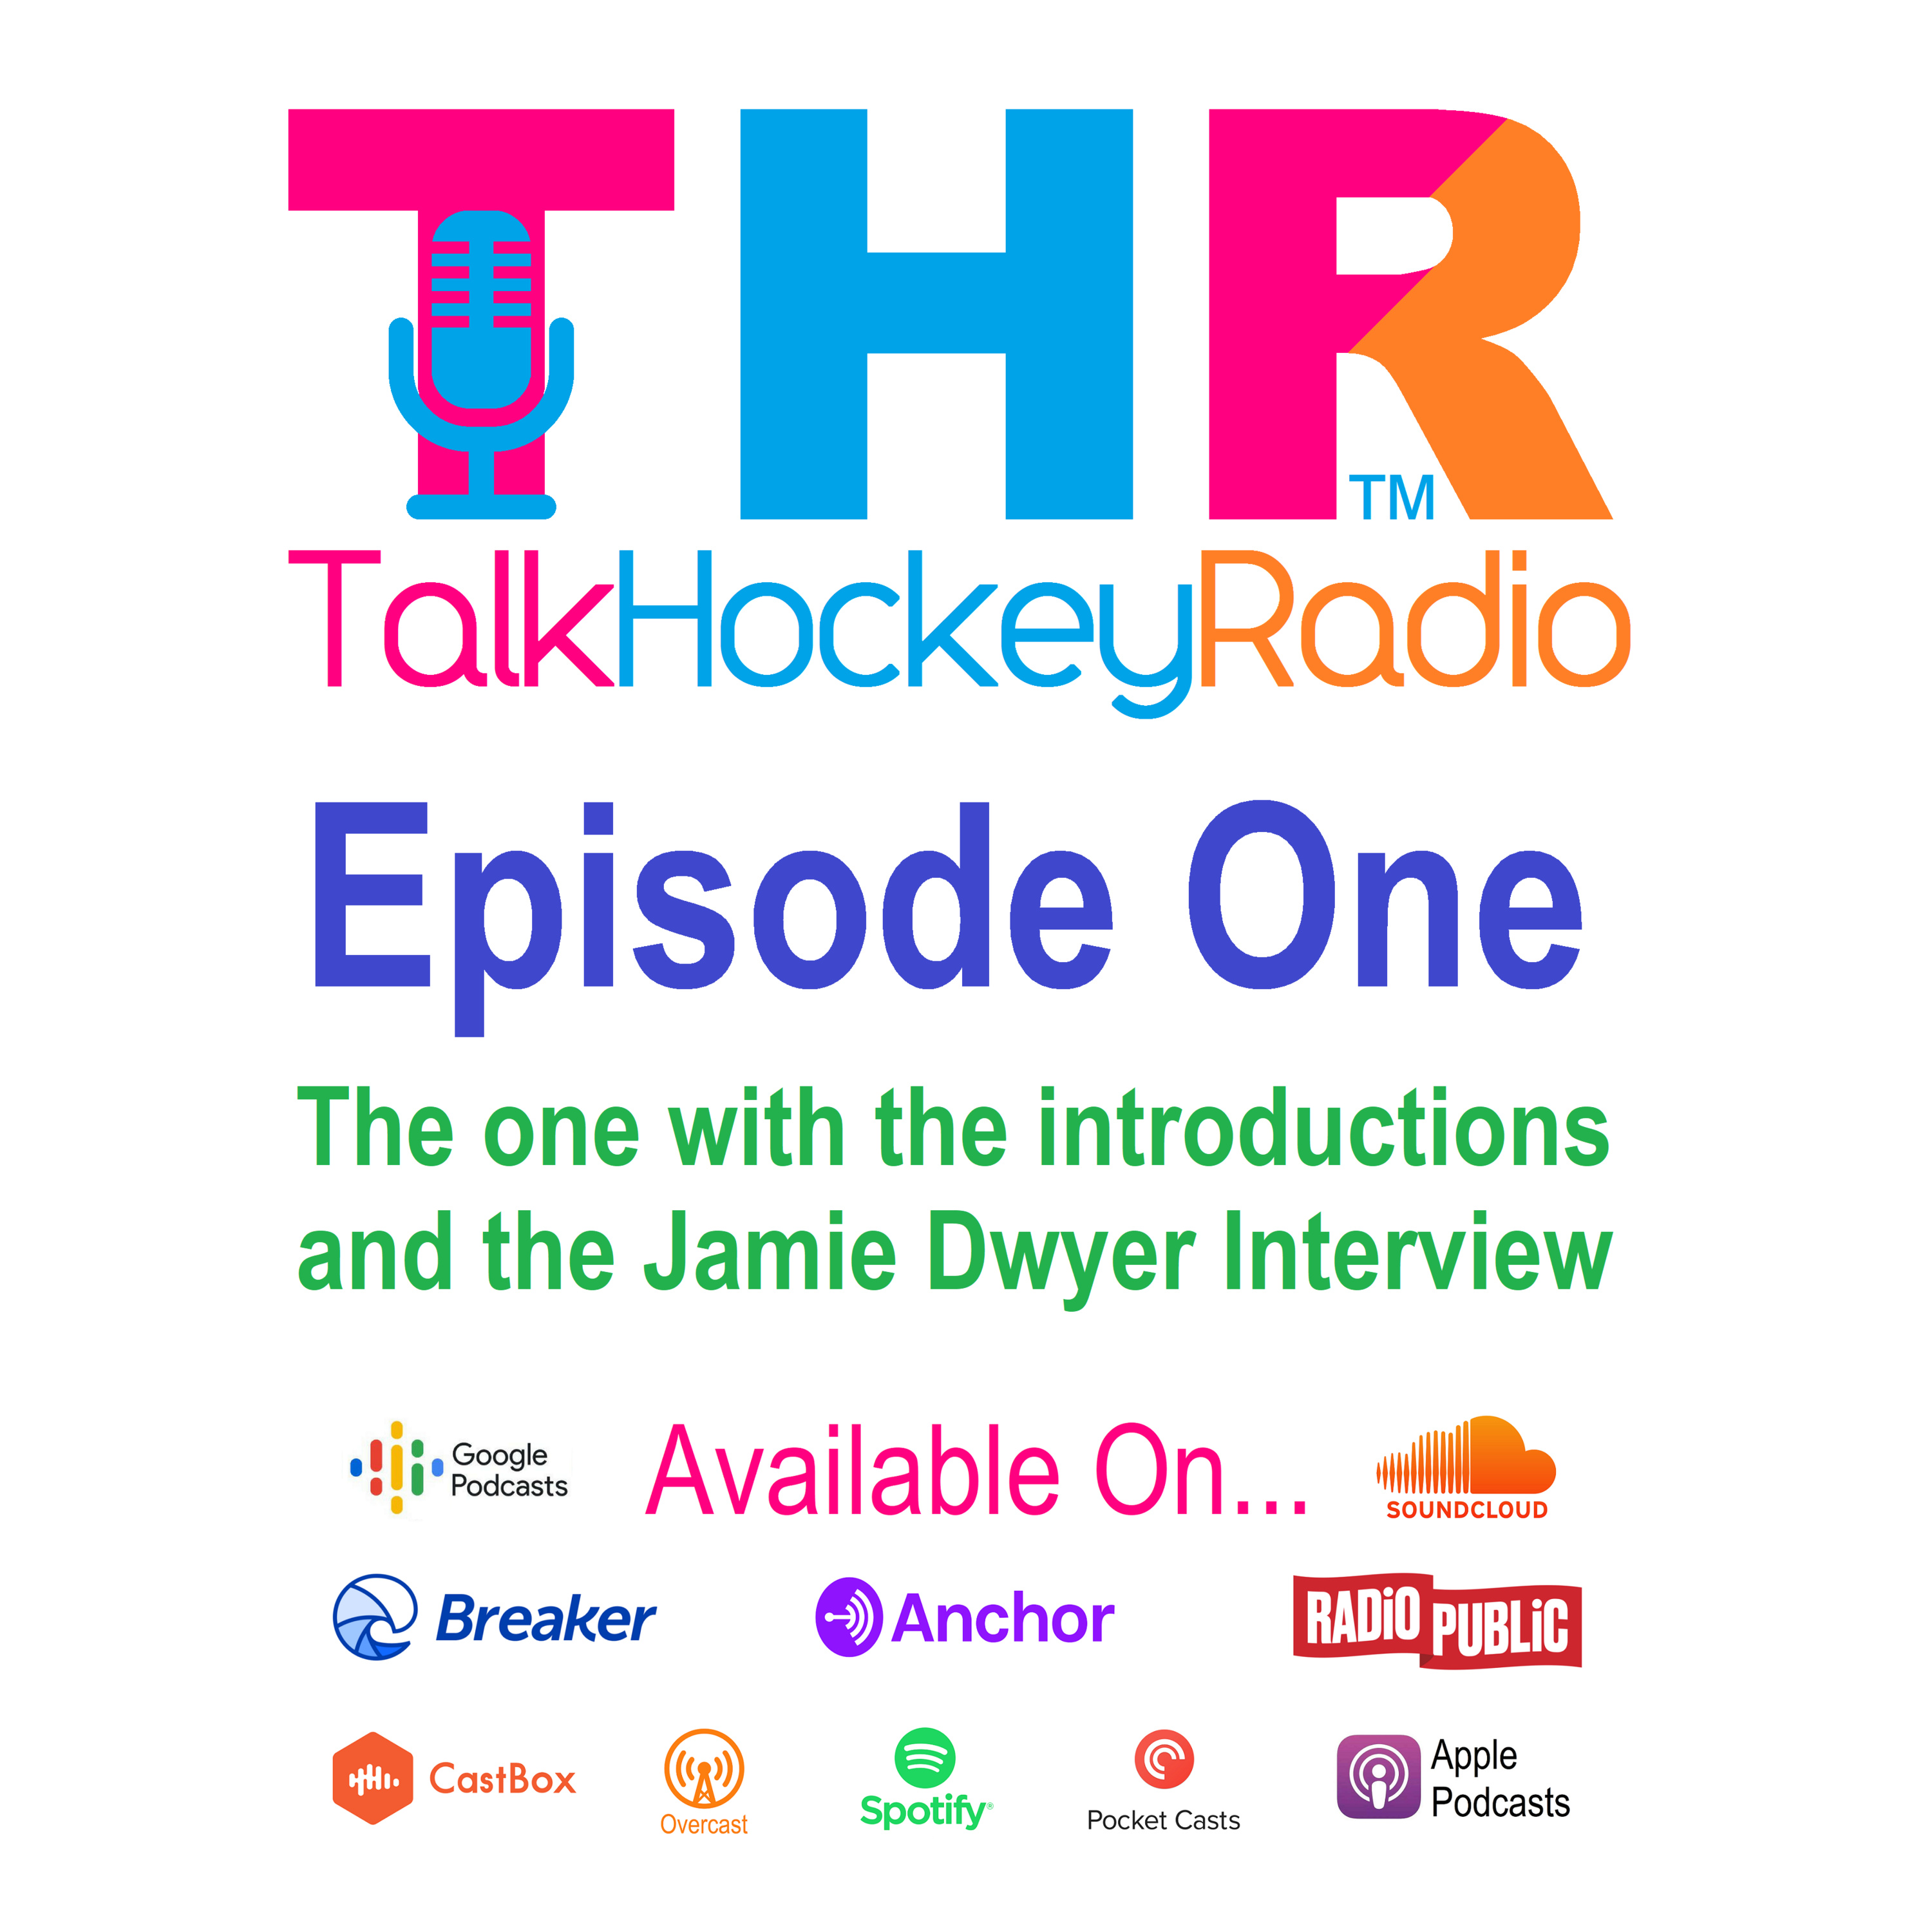 Episode 1 - Talk Hockey Radio - The one with the Introductions & The Jamie Dwyer Interview